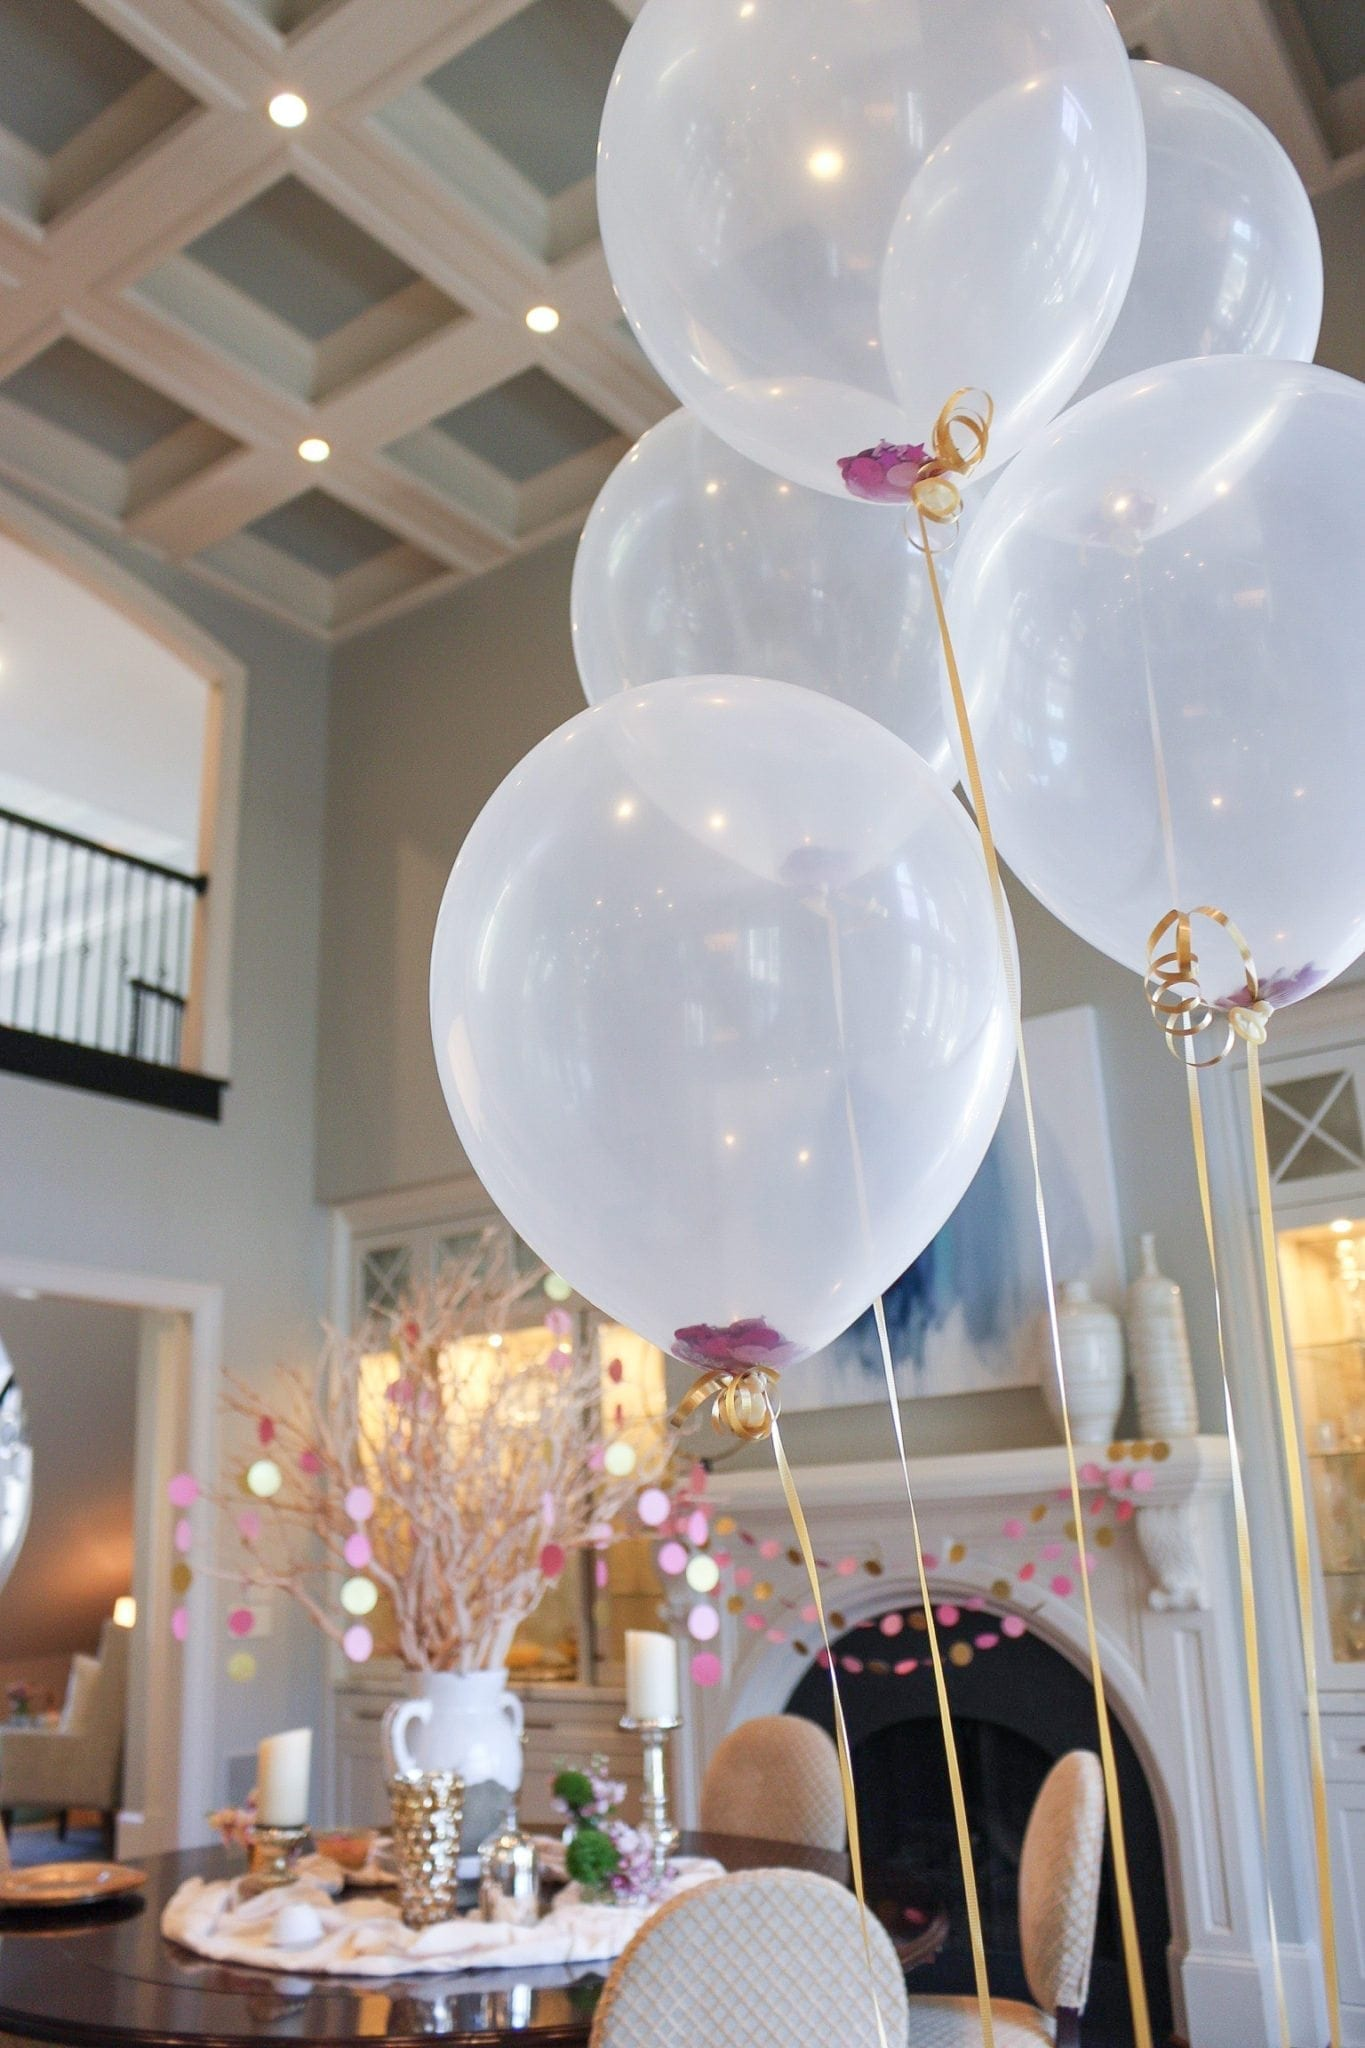 pink party ideas with balloons filled with glitter and pink mantel decor for a baby shower